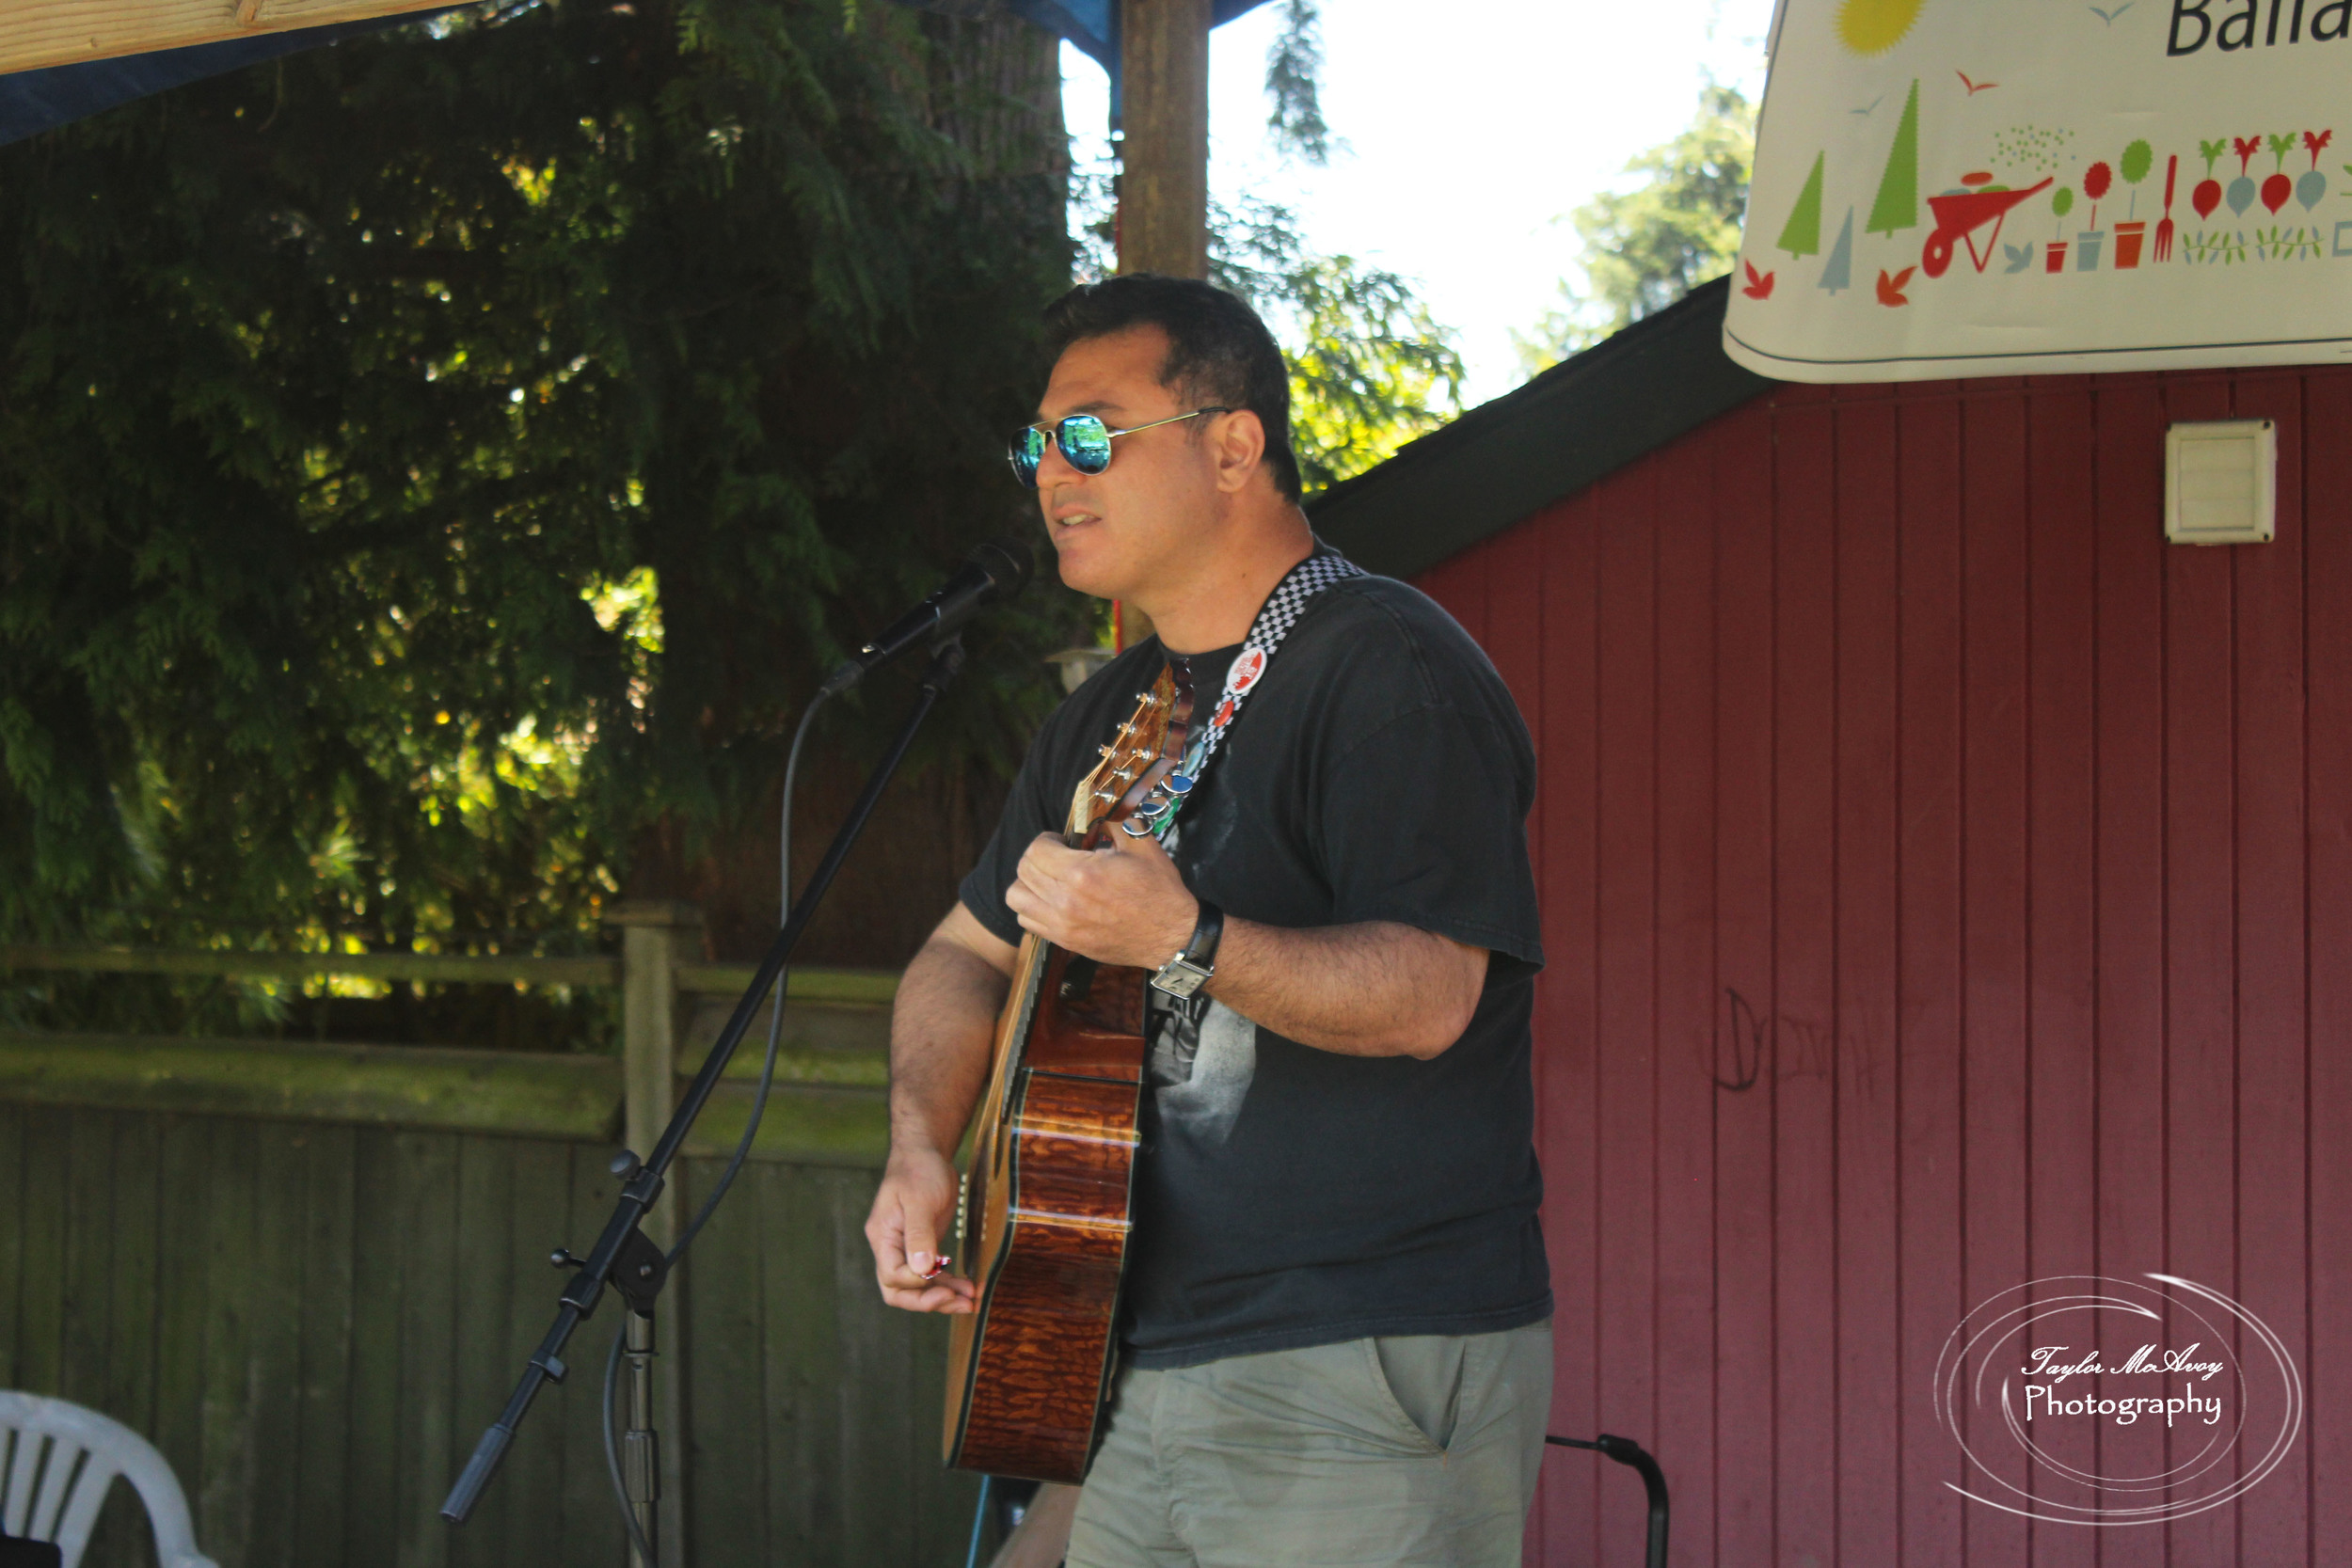 Musician Ben Henry performed at a small stage set in the gardens for community members to sit and enjoy or listen to while exploring.